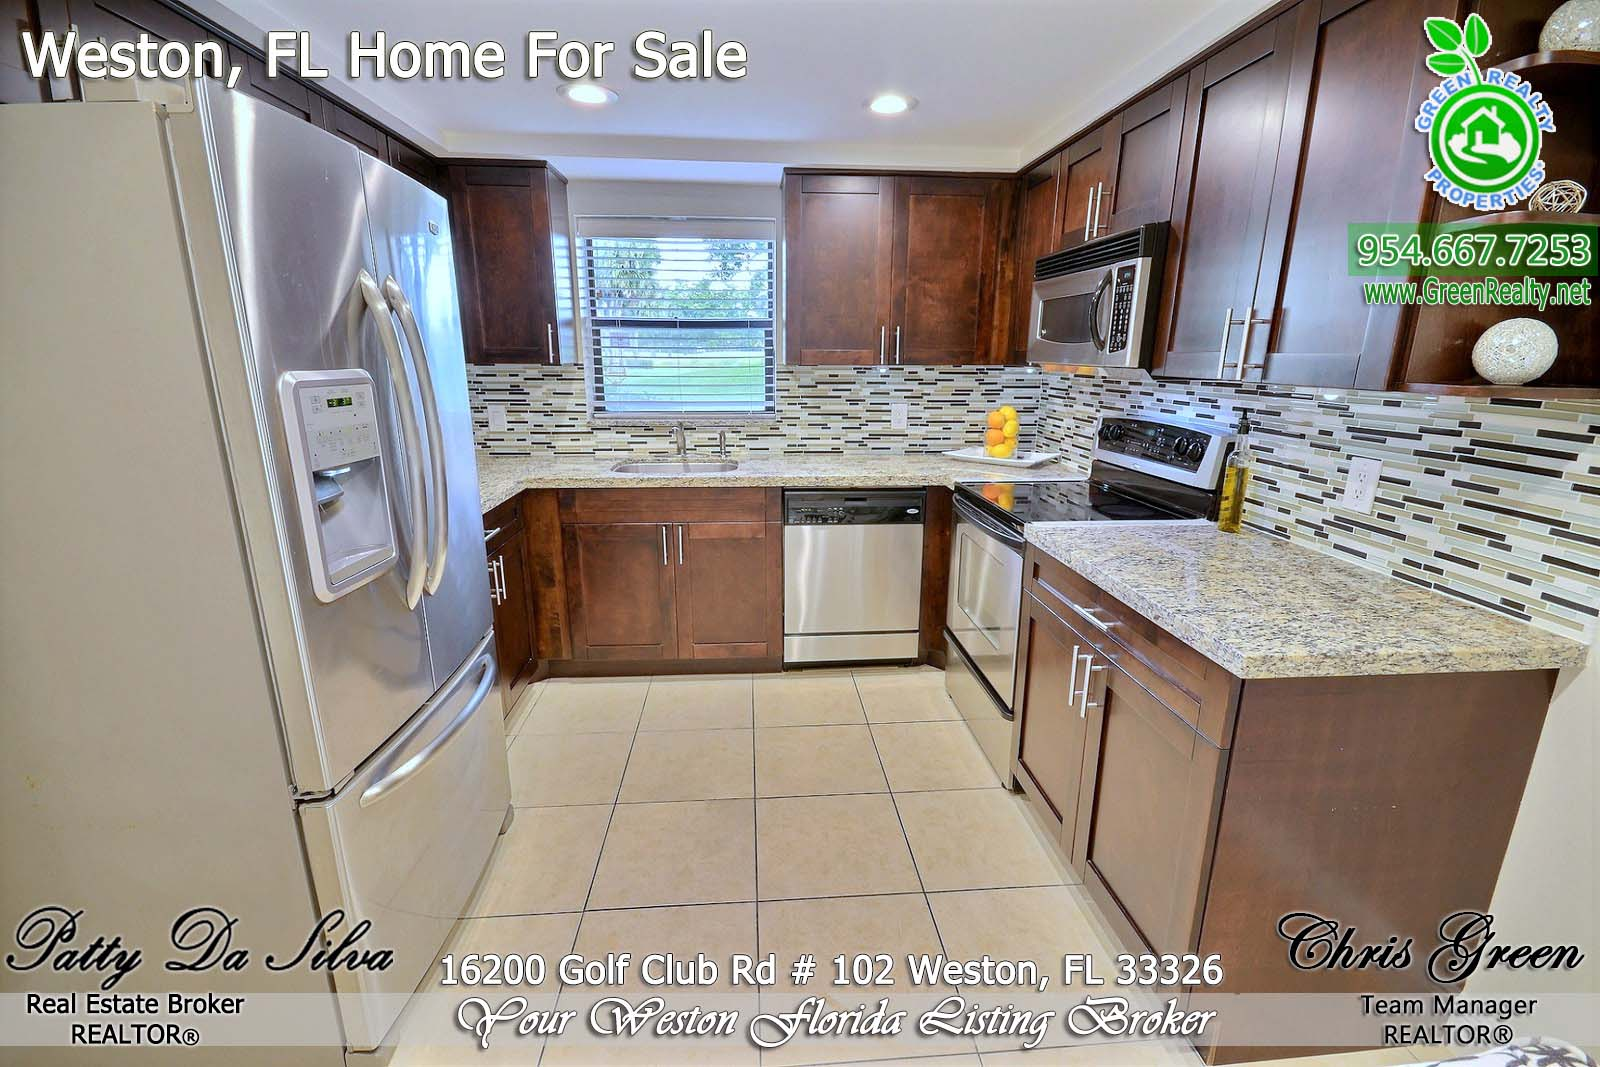 13 16200 Golf Club Rd, Unit 102, Weston FL 33326 (13)